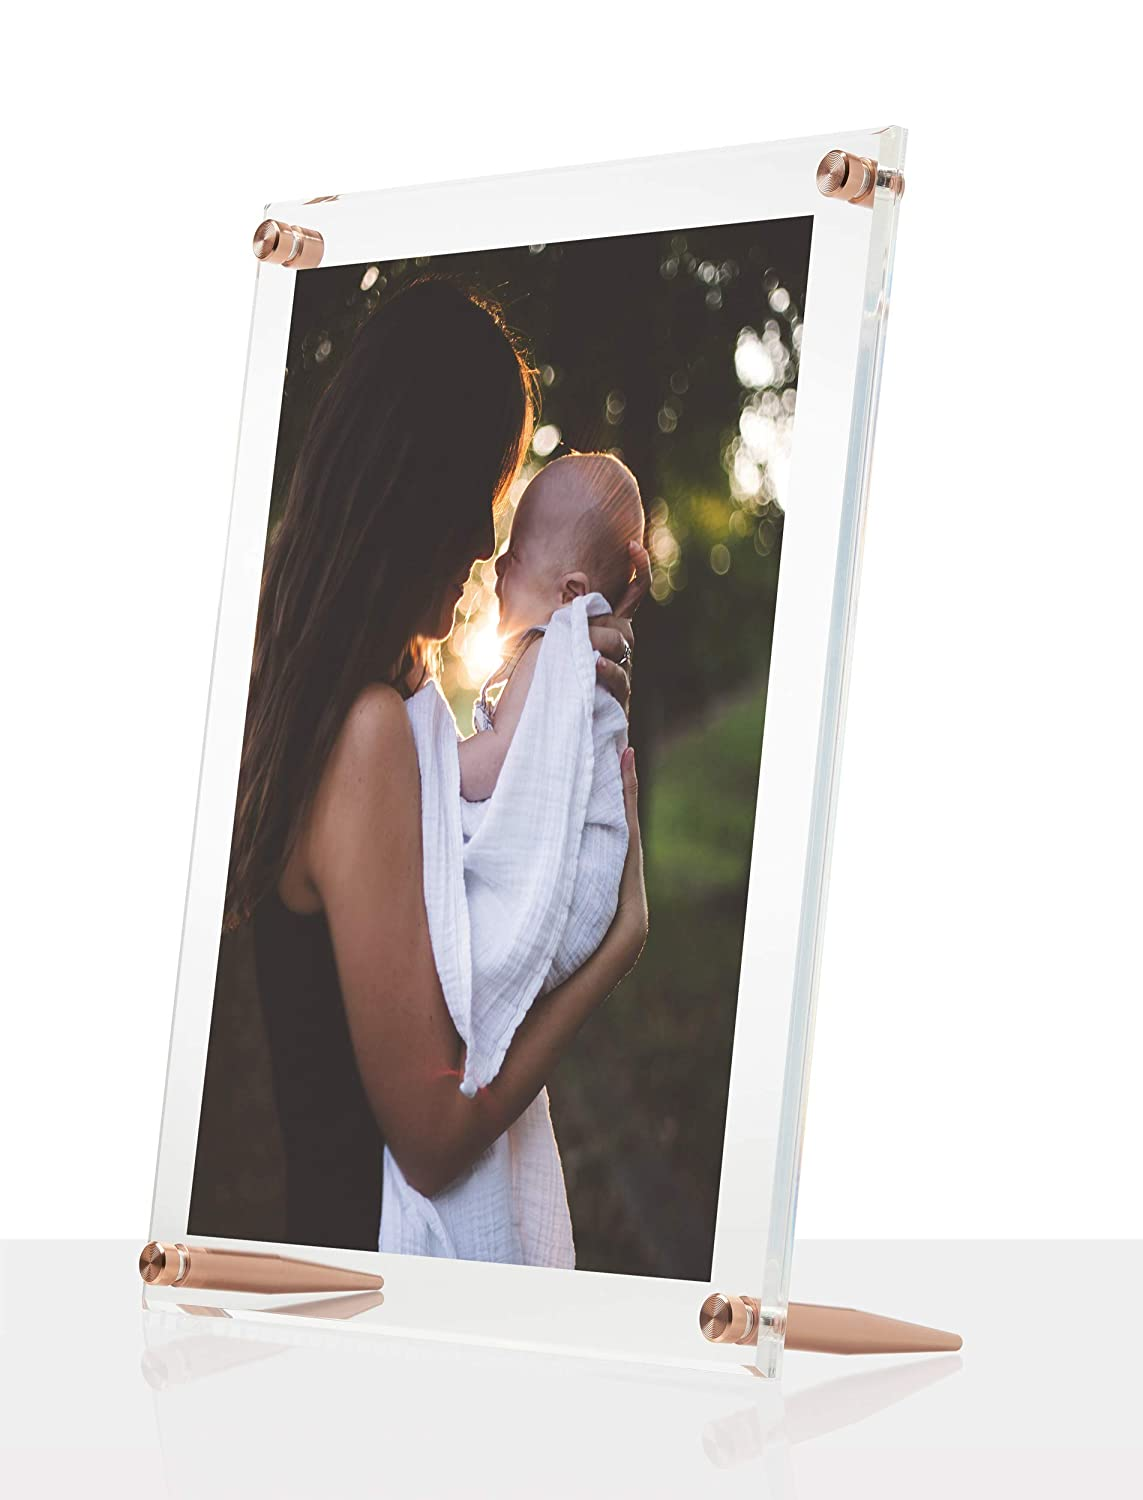 Wexel Art 10x12-Inch Diamond Polished Beveled Edge Framing Grade Acrylic Tabletop Floating Frame with Silver Hardware for 8x10-Inch Art /& Photos TBL1012S